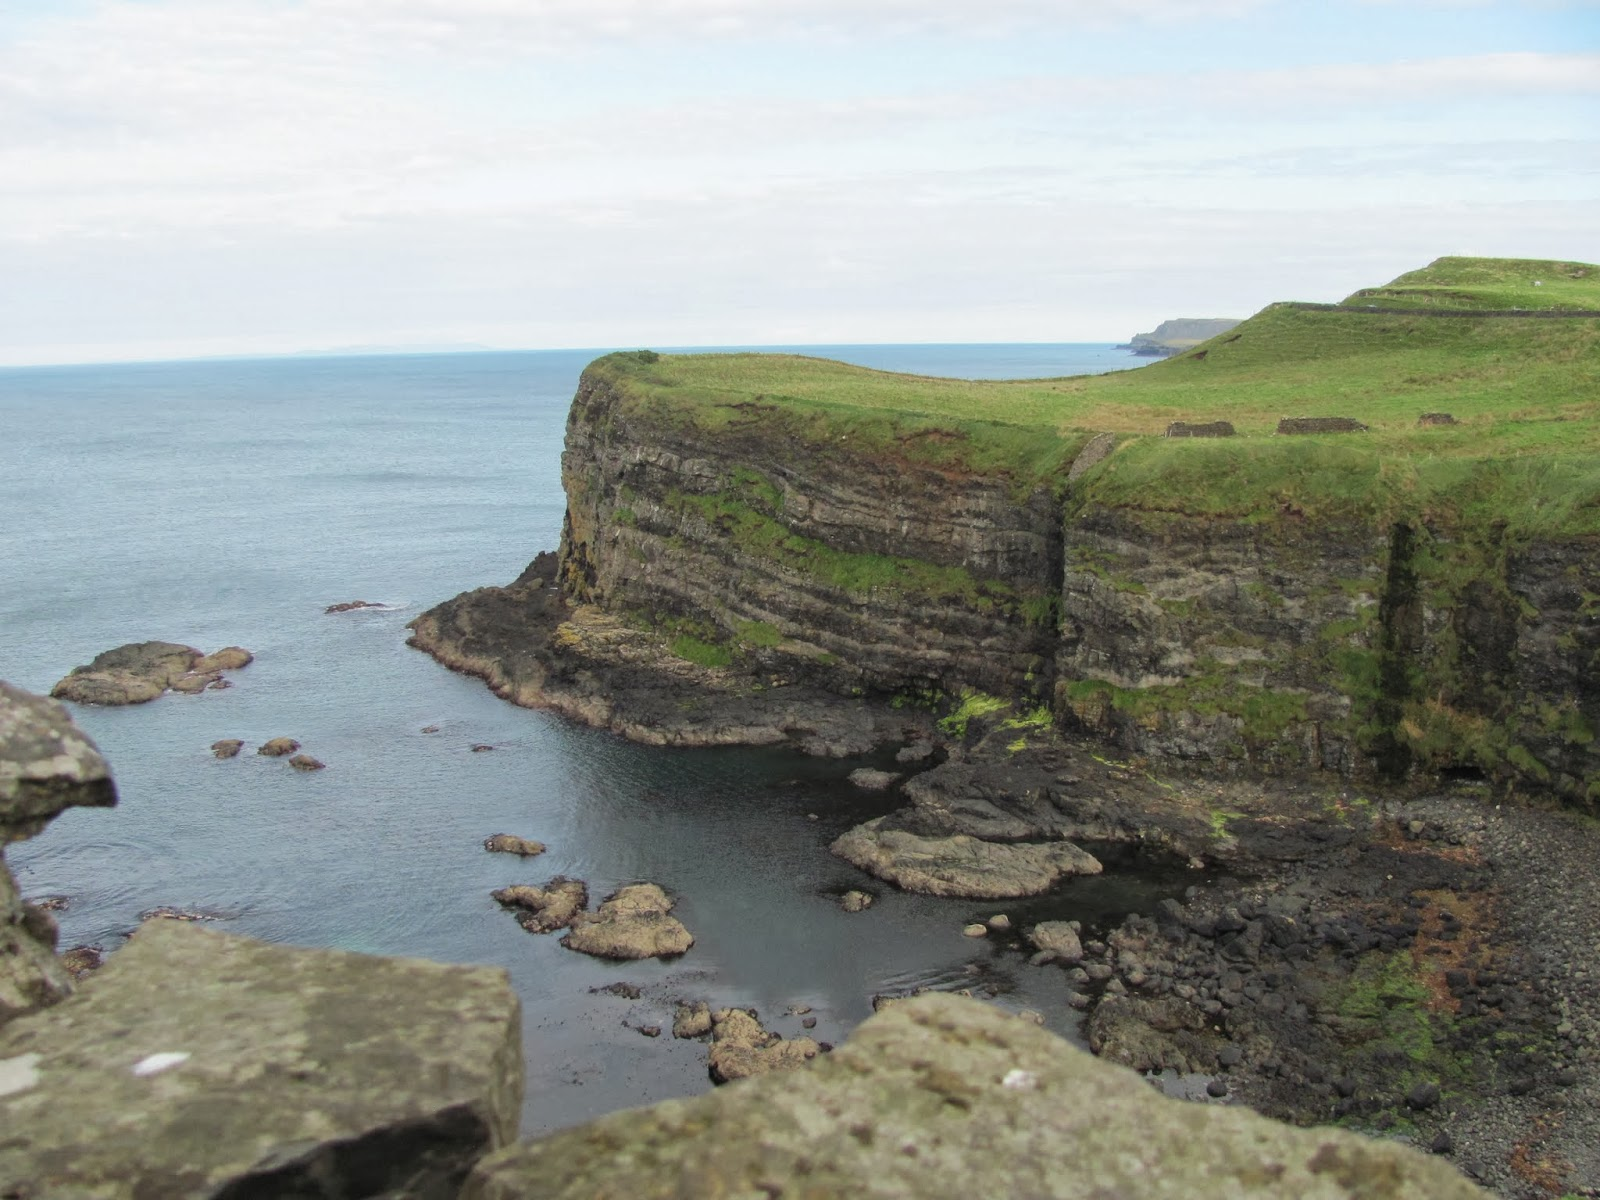 View of the Cliffs from Dunluce Castle